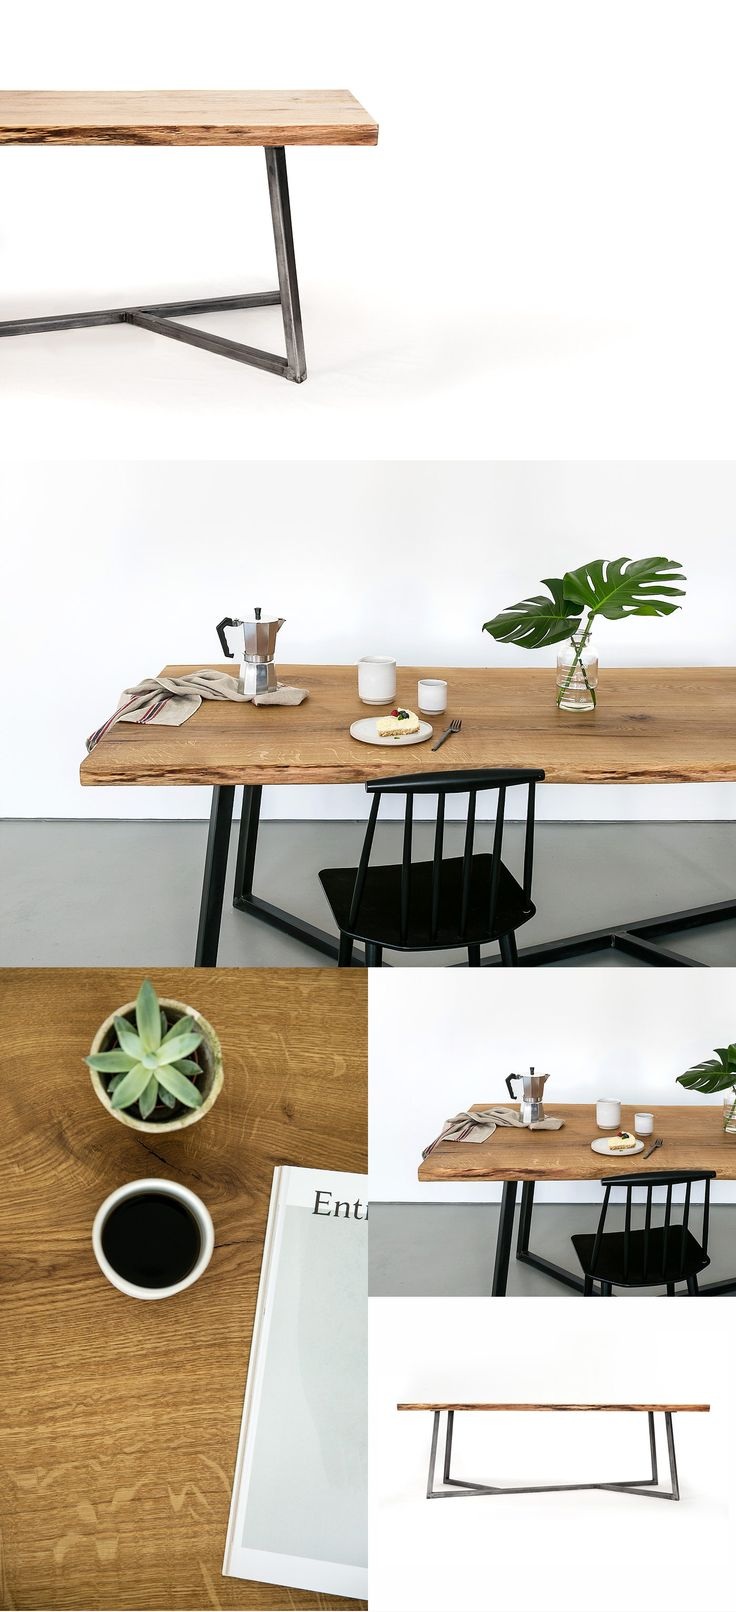 Oak Steel Table By Nutsandwoods Nutsandwoods Furniture